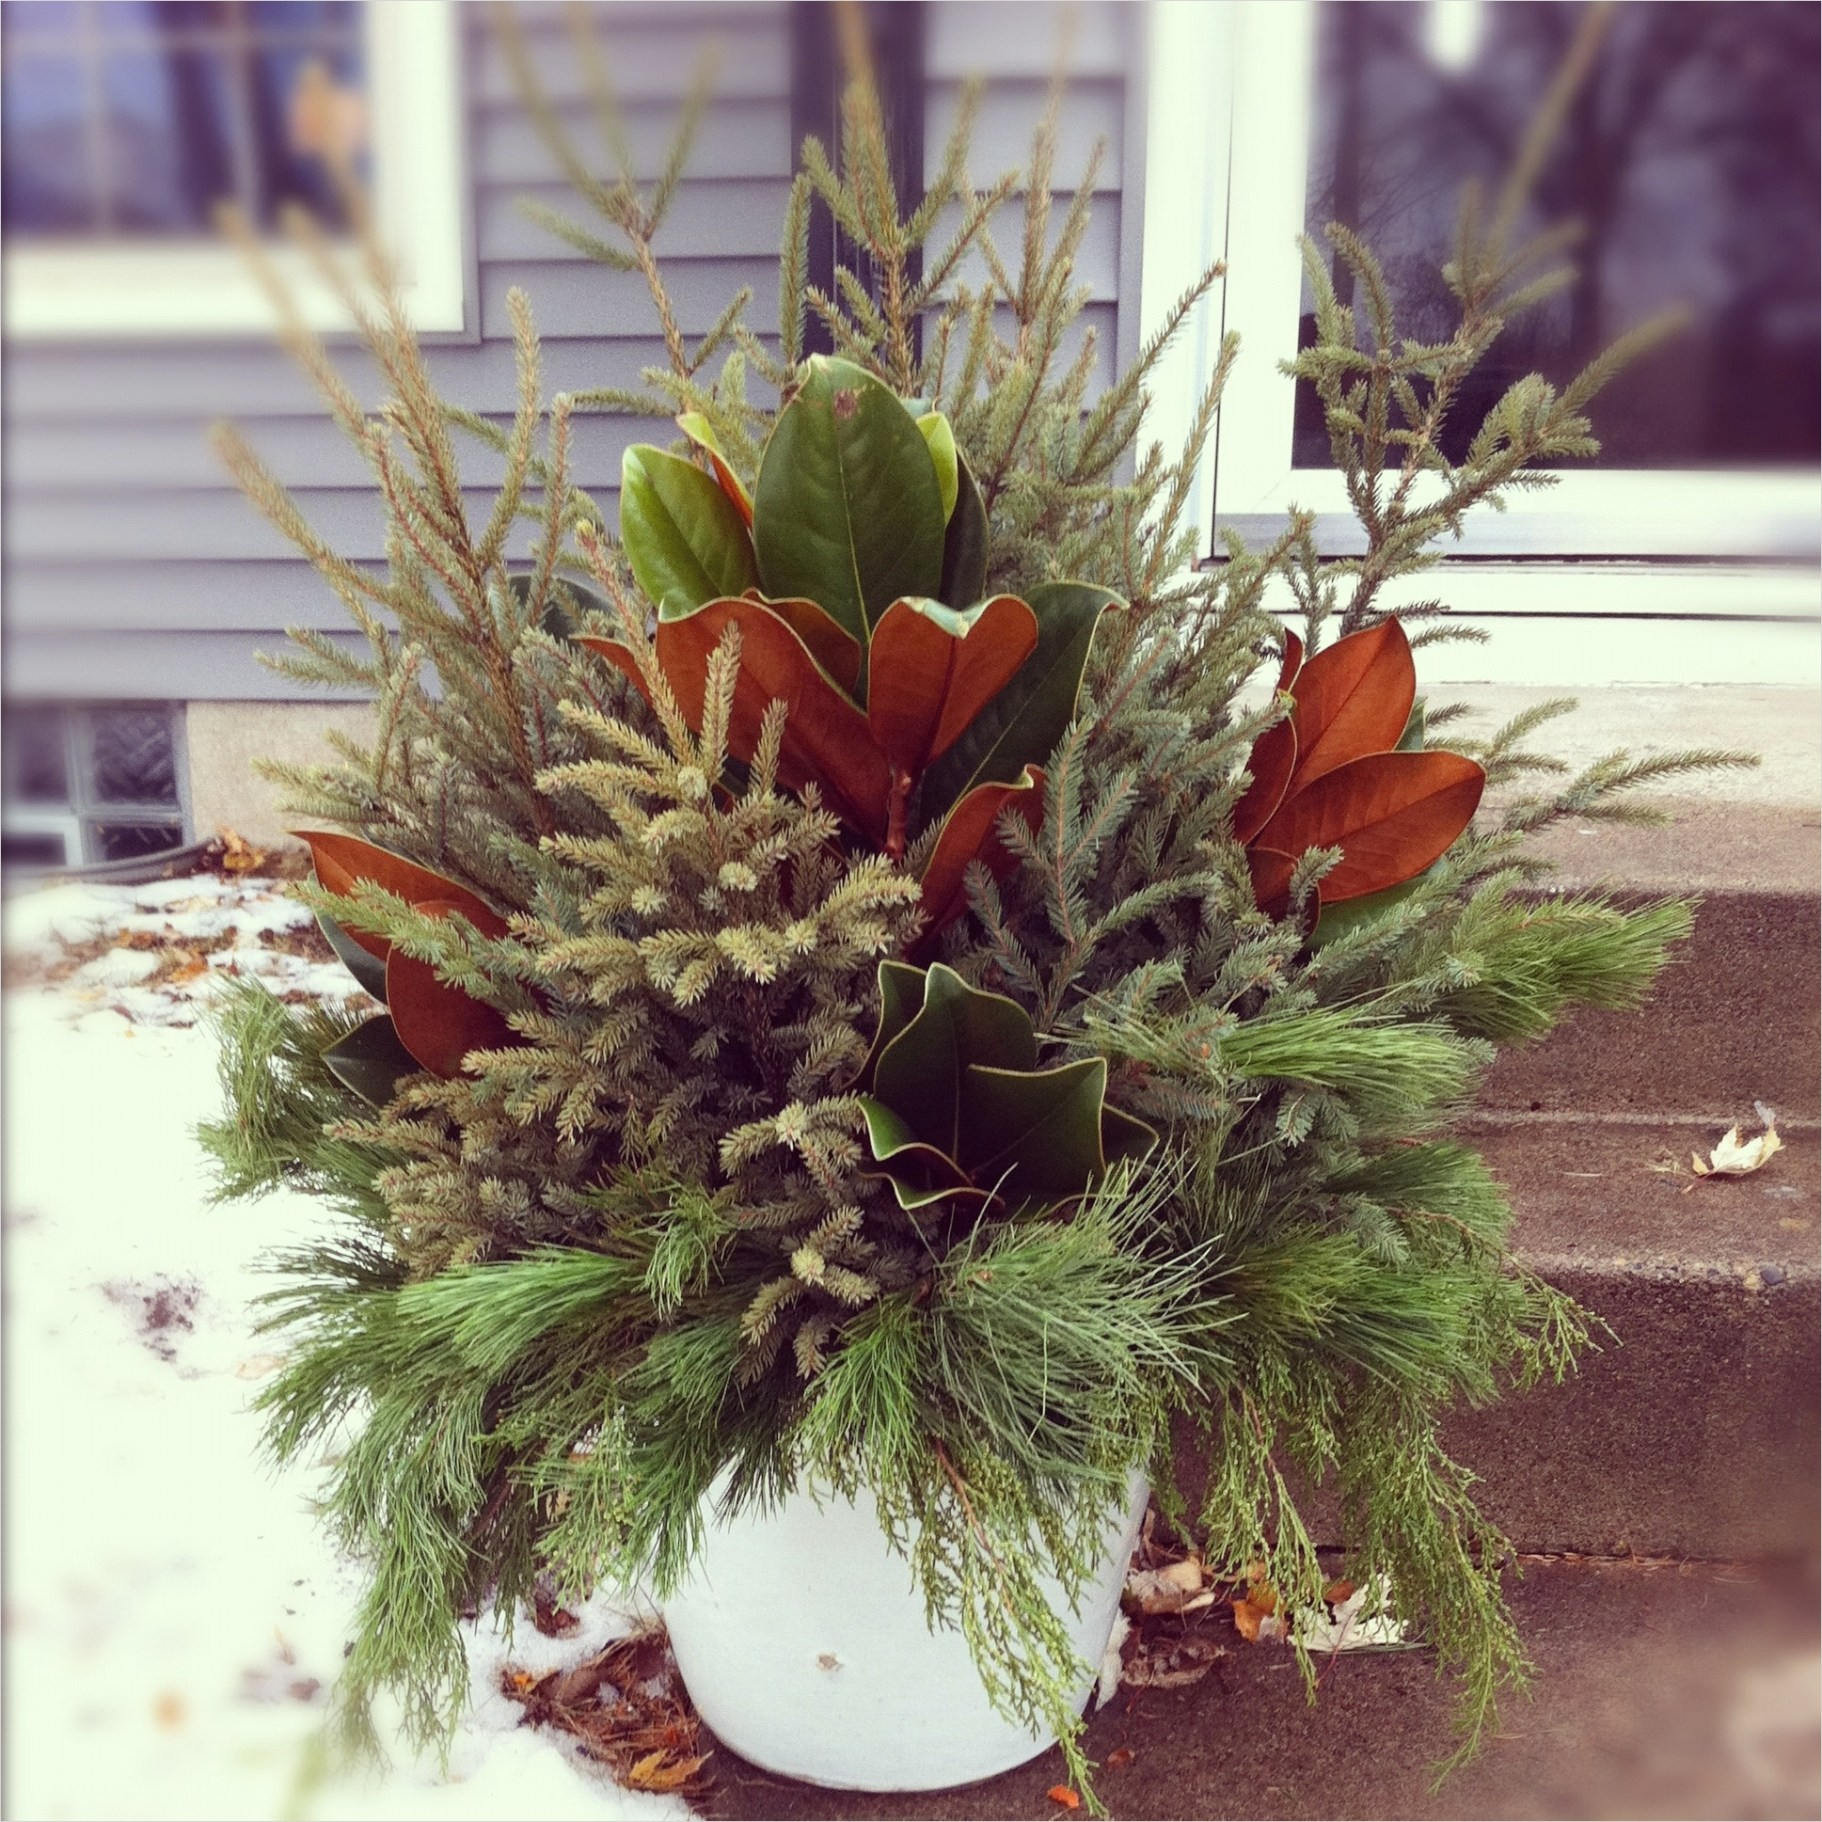 42 Beautiful Christmas Outdoor Pot Decorations Ideas 19 Holiday Pot Ideas 7